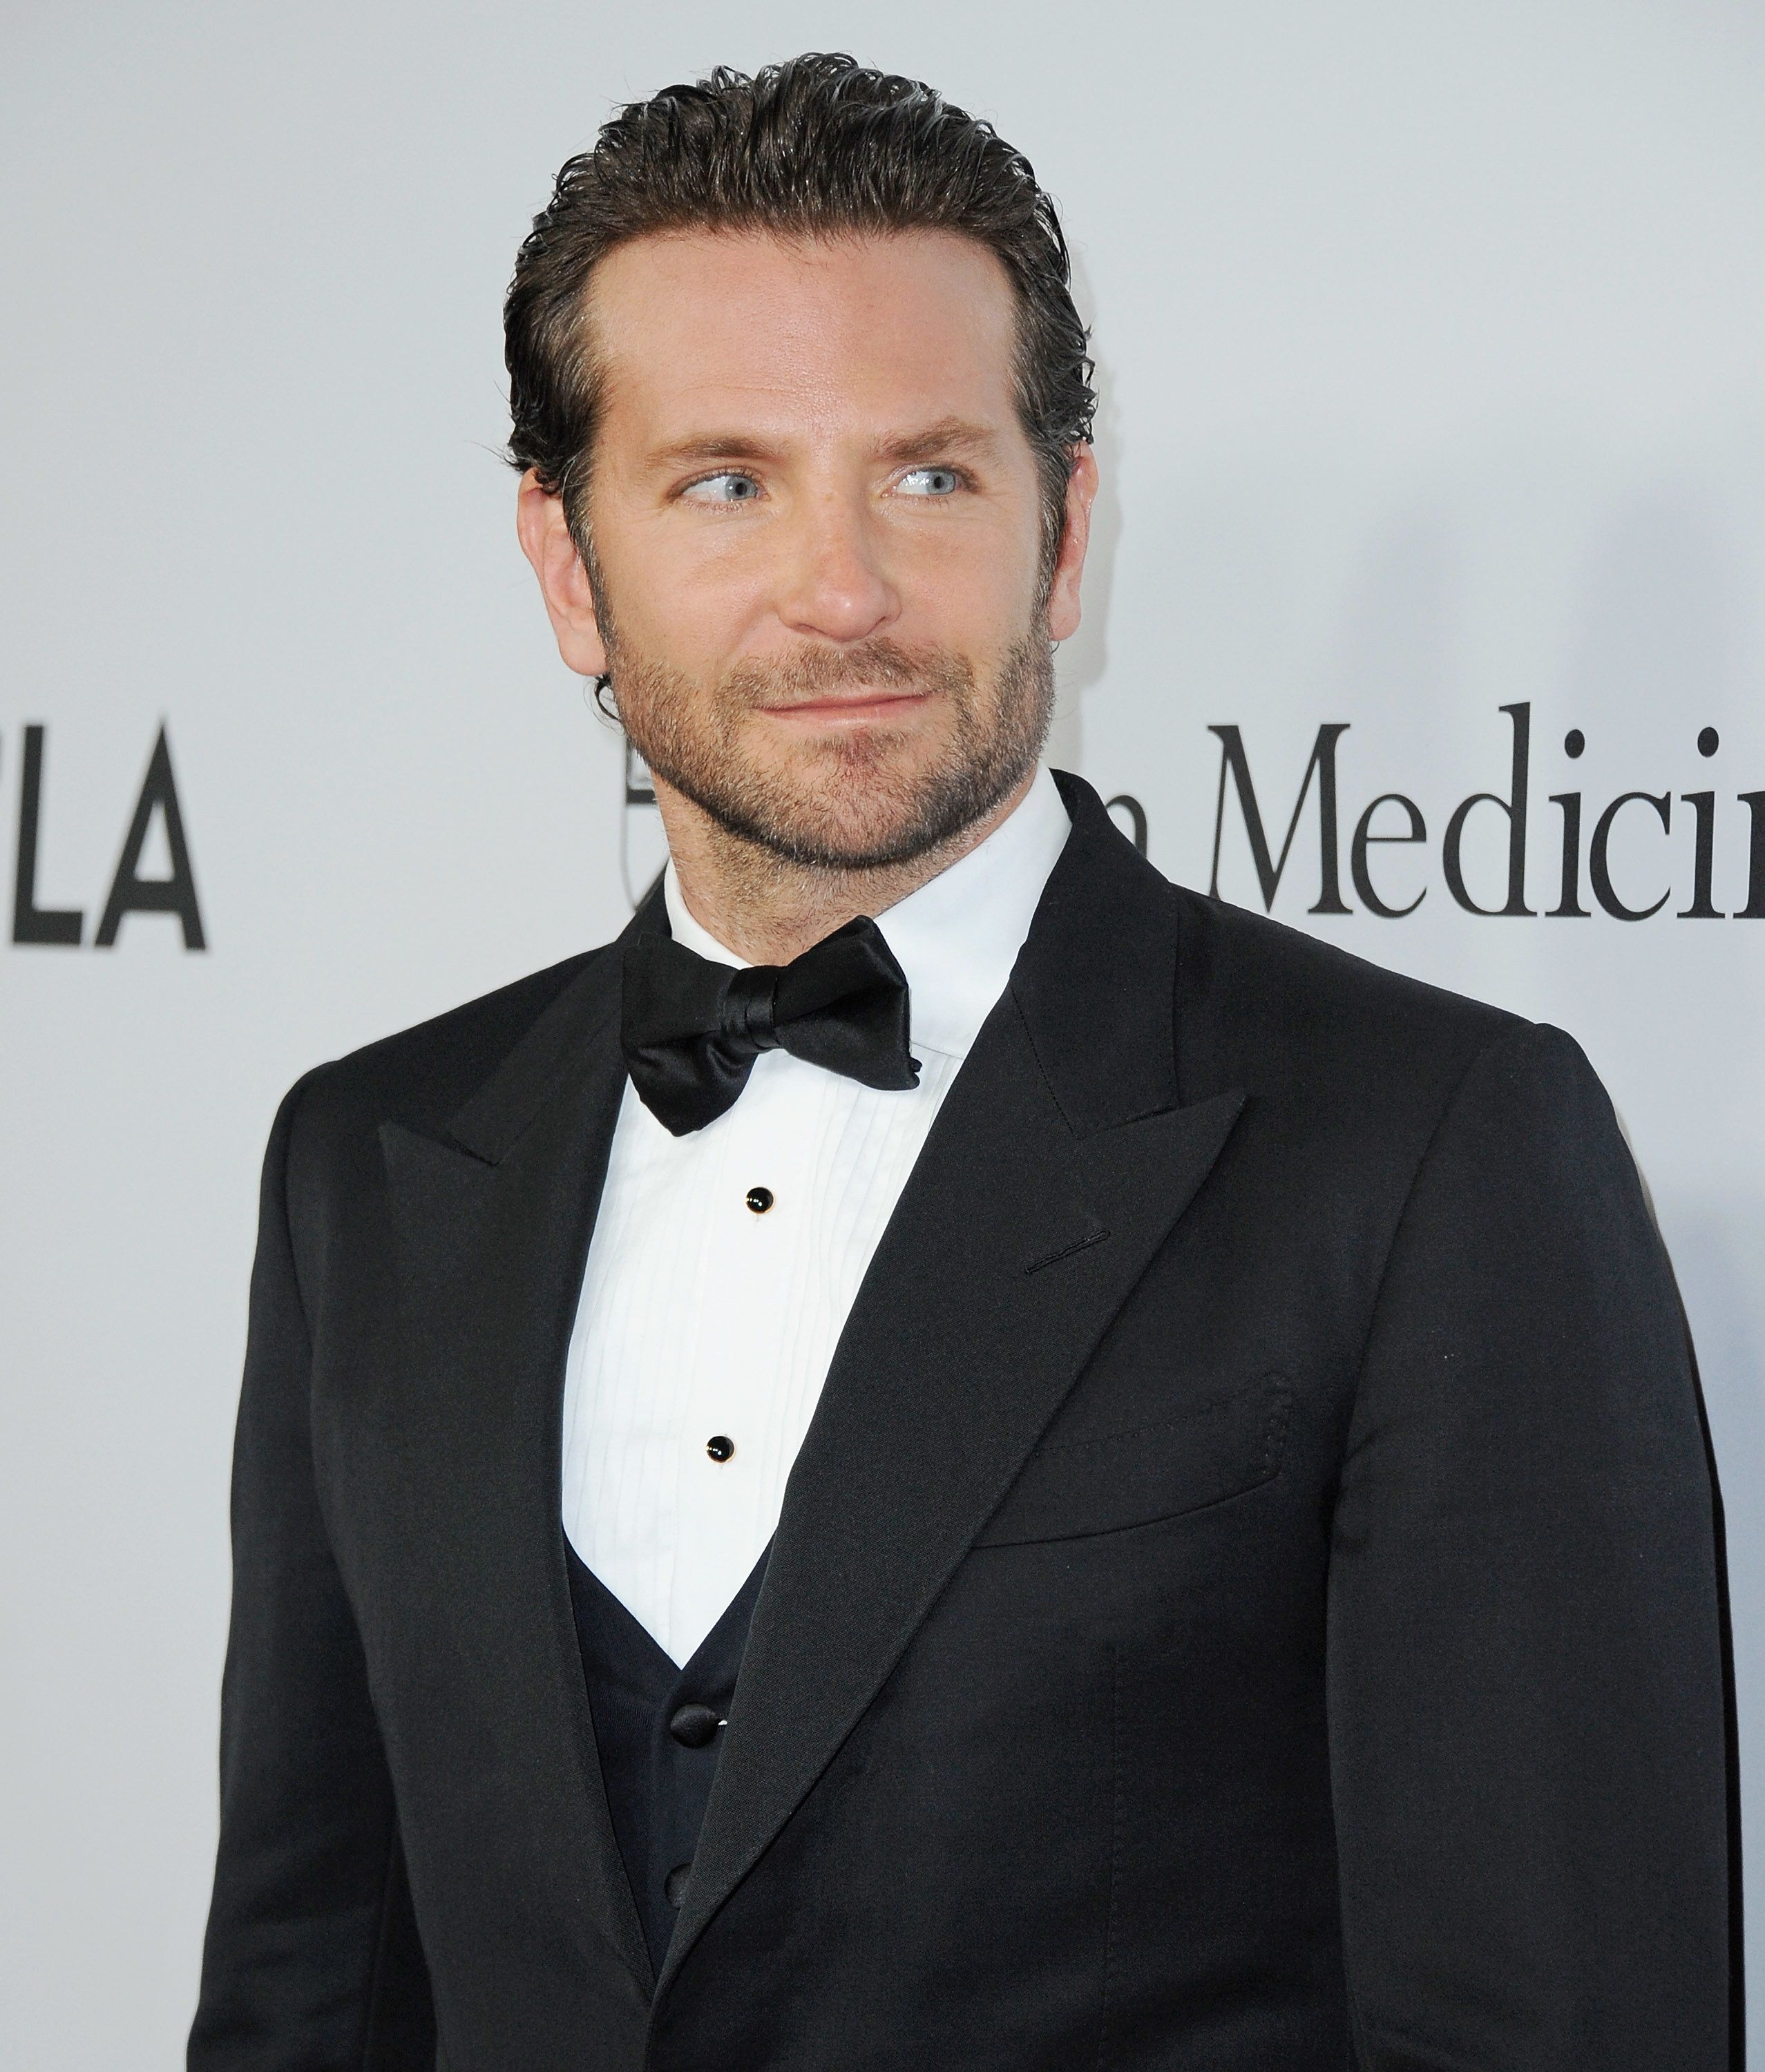 LOS ANGELES, CA - APRIL 13:  Actor Bradley Cooper arrives at Sean Parker And The Parker Foundation Launch The Parker Institute For Cancer Immunotherapy Gala on April 13, 2016 in Los Angeles, California.  (Photo by Jon Kopaloff/FilmMagic)